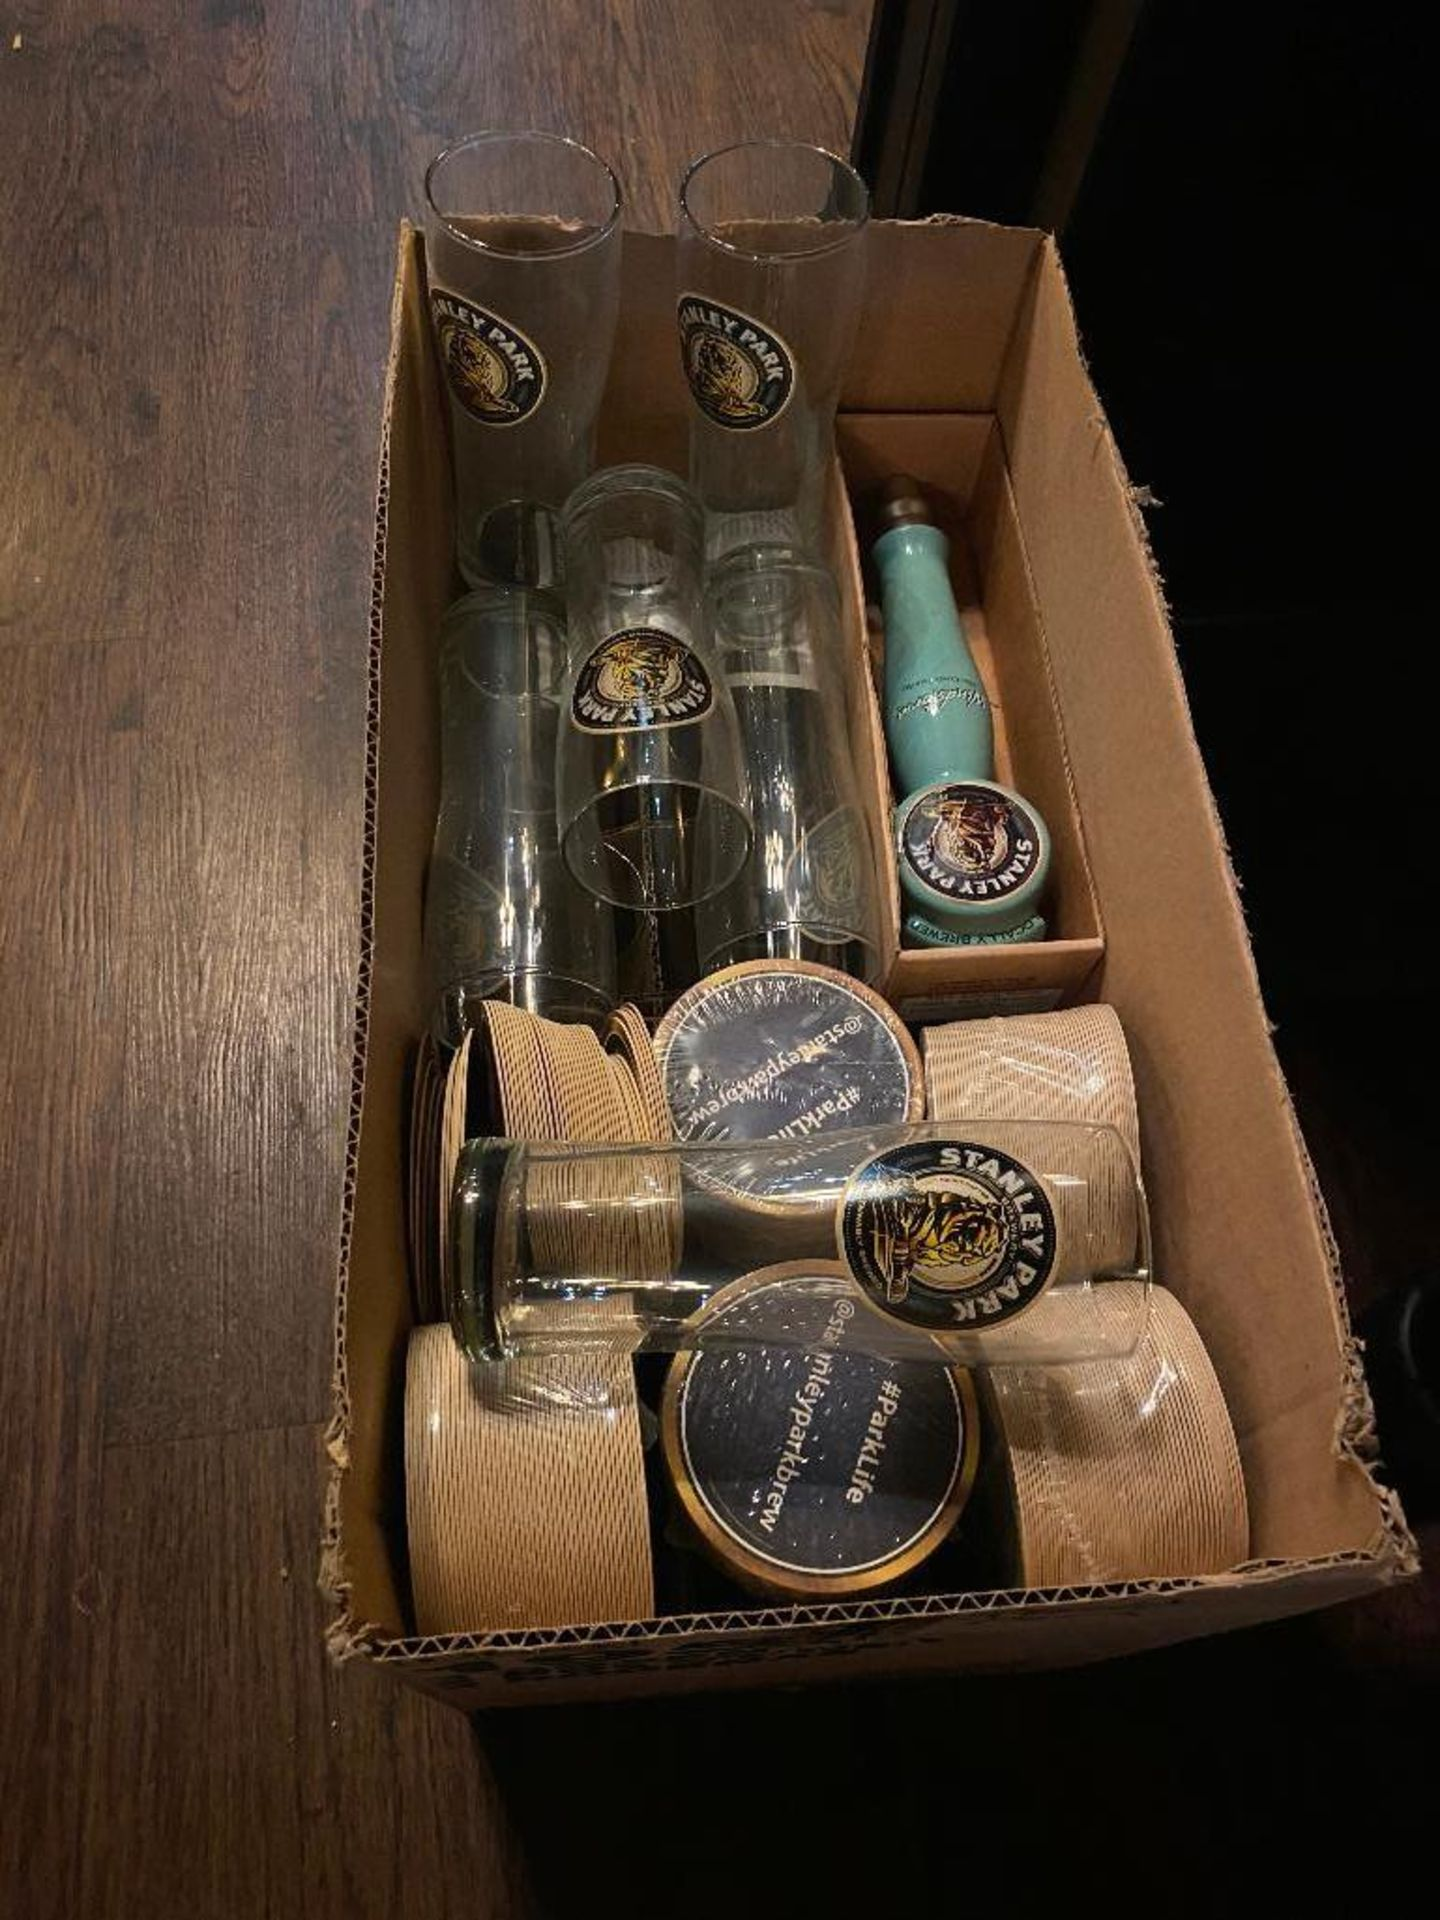 LOT OF STANLEY PARK BREWERY ITEMS INCLUDING BEER TAP, GLASSES & COASTERS - Image 2 of 4